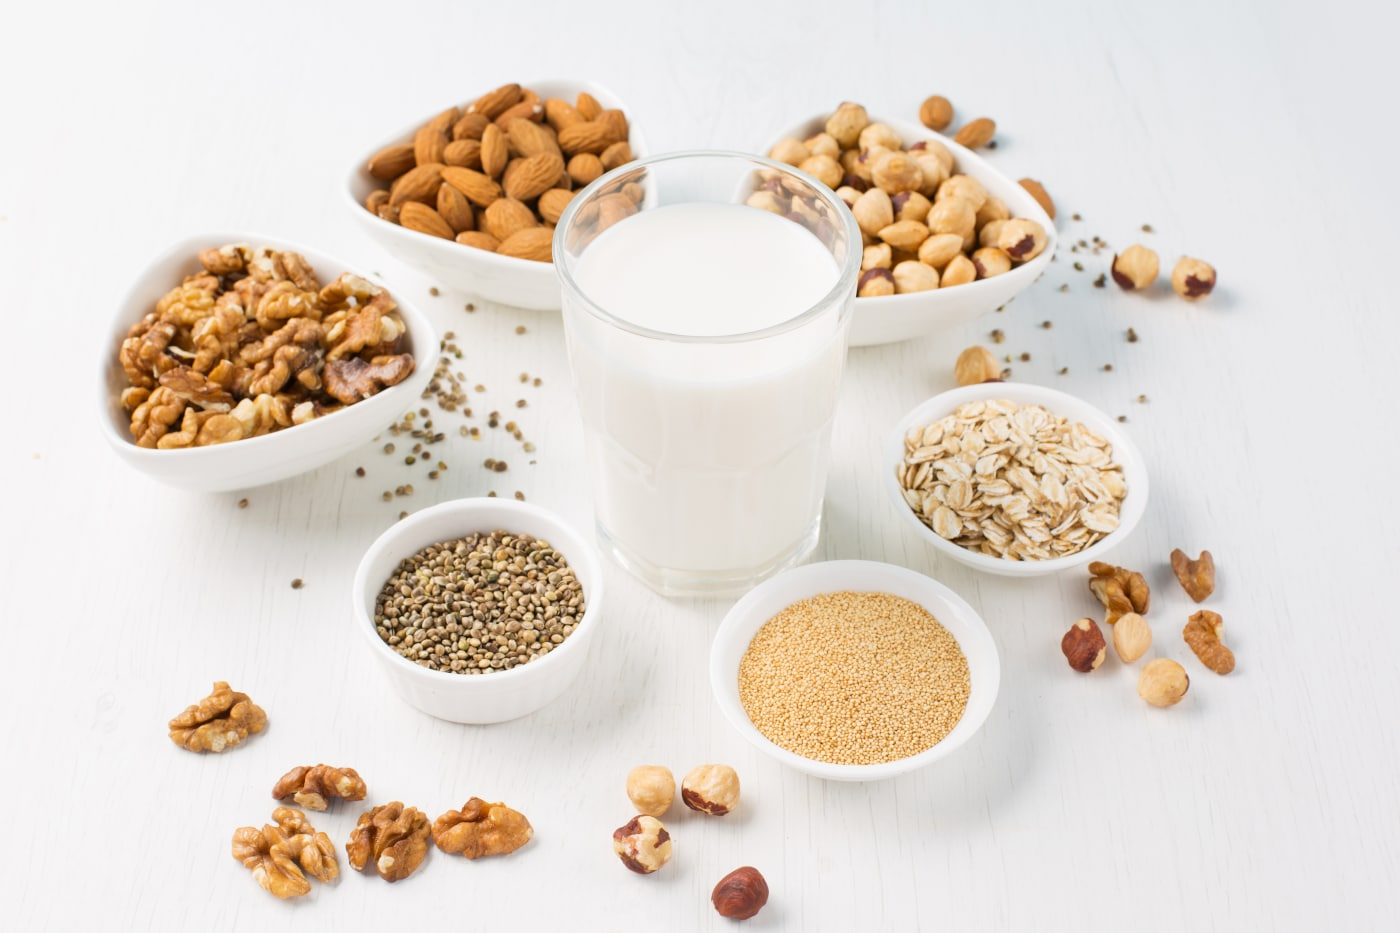 Plant-based Dairy Market Massive Demand Leading To Exponential 11.7% CAGR By 2031 Due to Rising Organic Food Demand